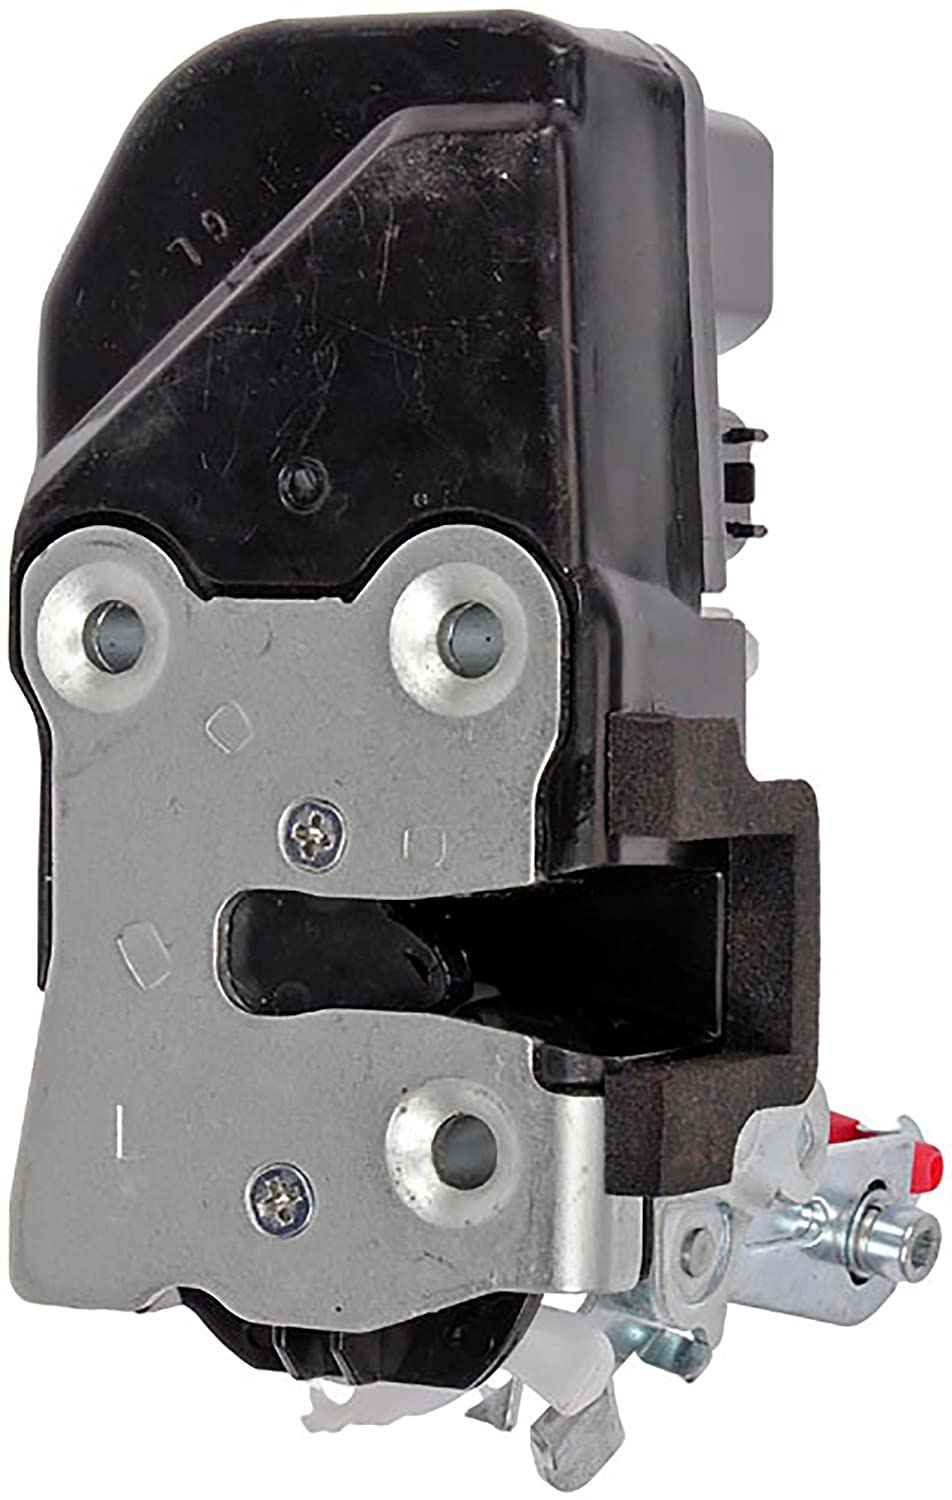 APDTY 137059 Tailgate Rear Trunk Lock Actuator Fits 2003-2007 Jeep Liberty Replaces 55360641AA, 55360641AB, 55360641AC, 55360641AD, 55360641AE